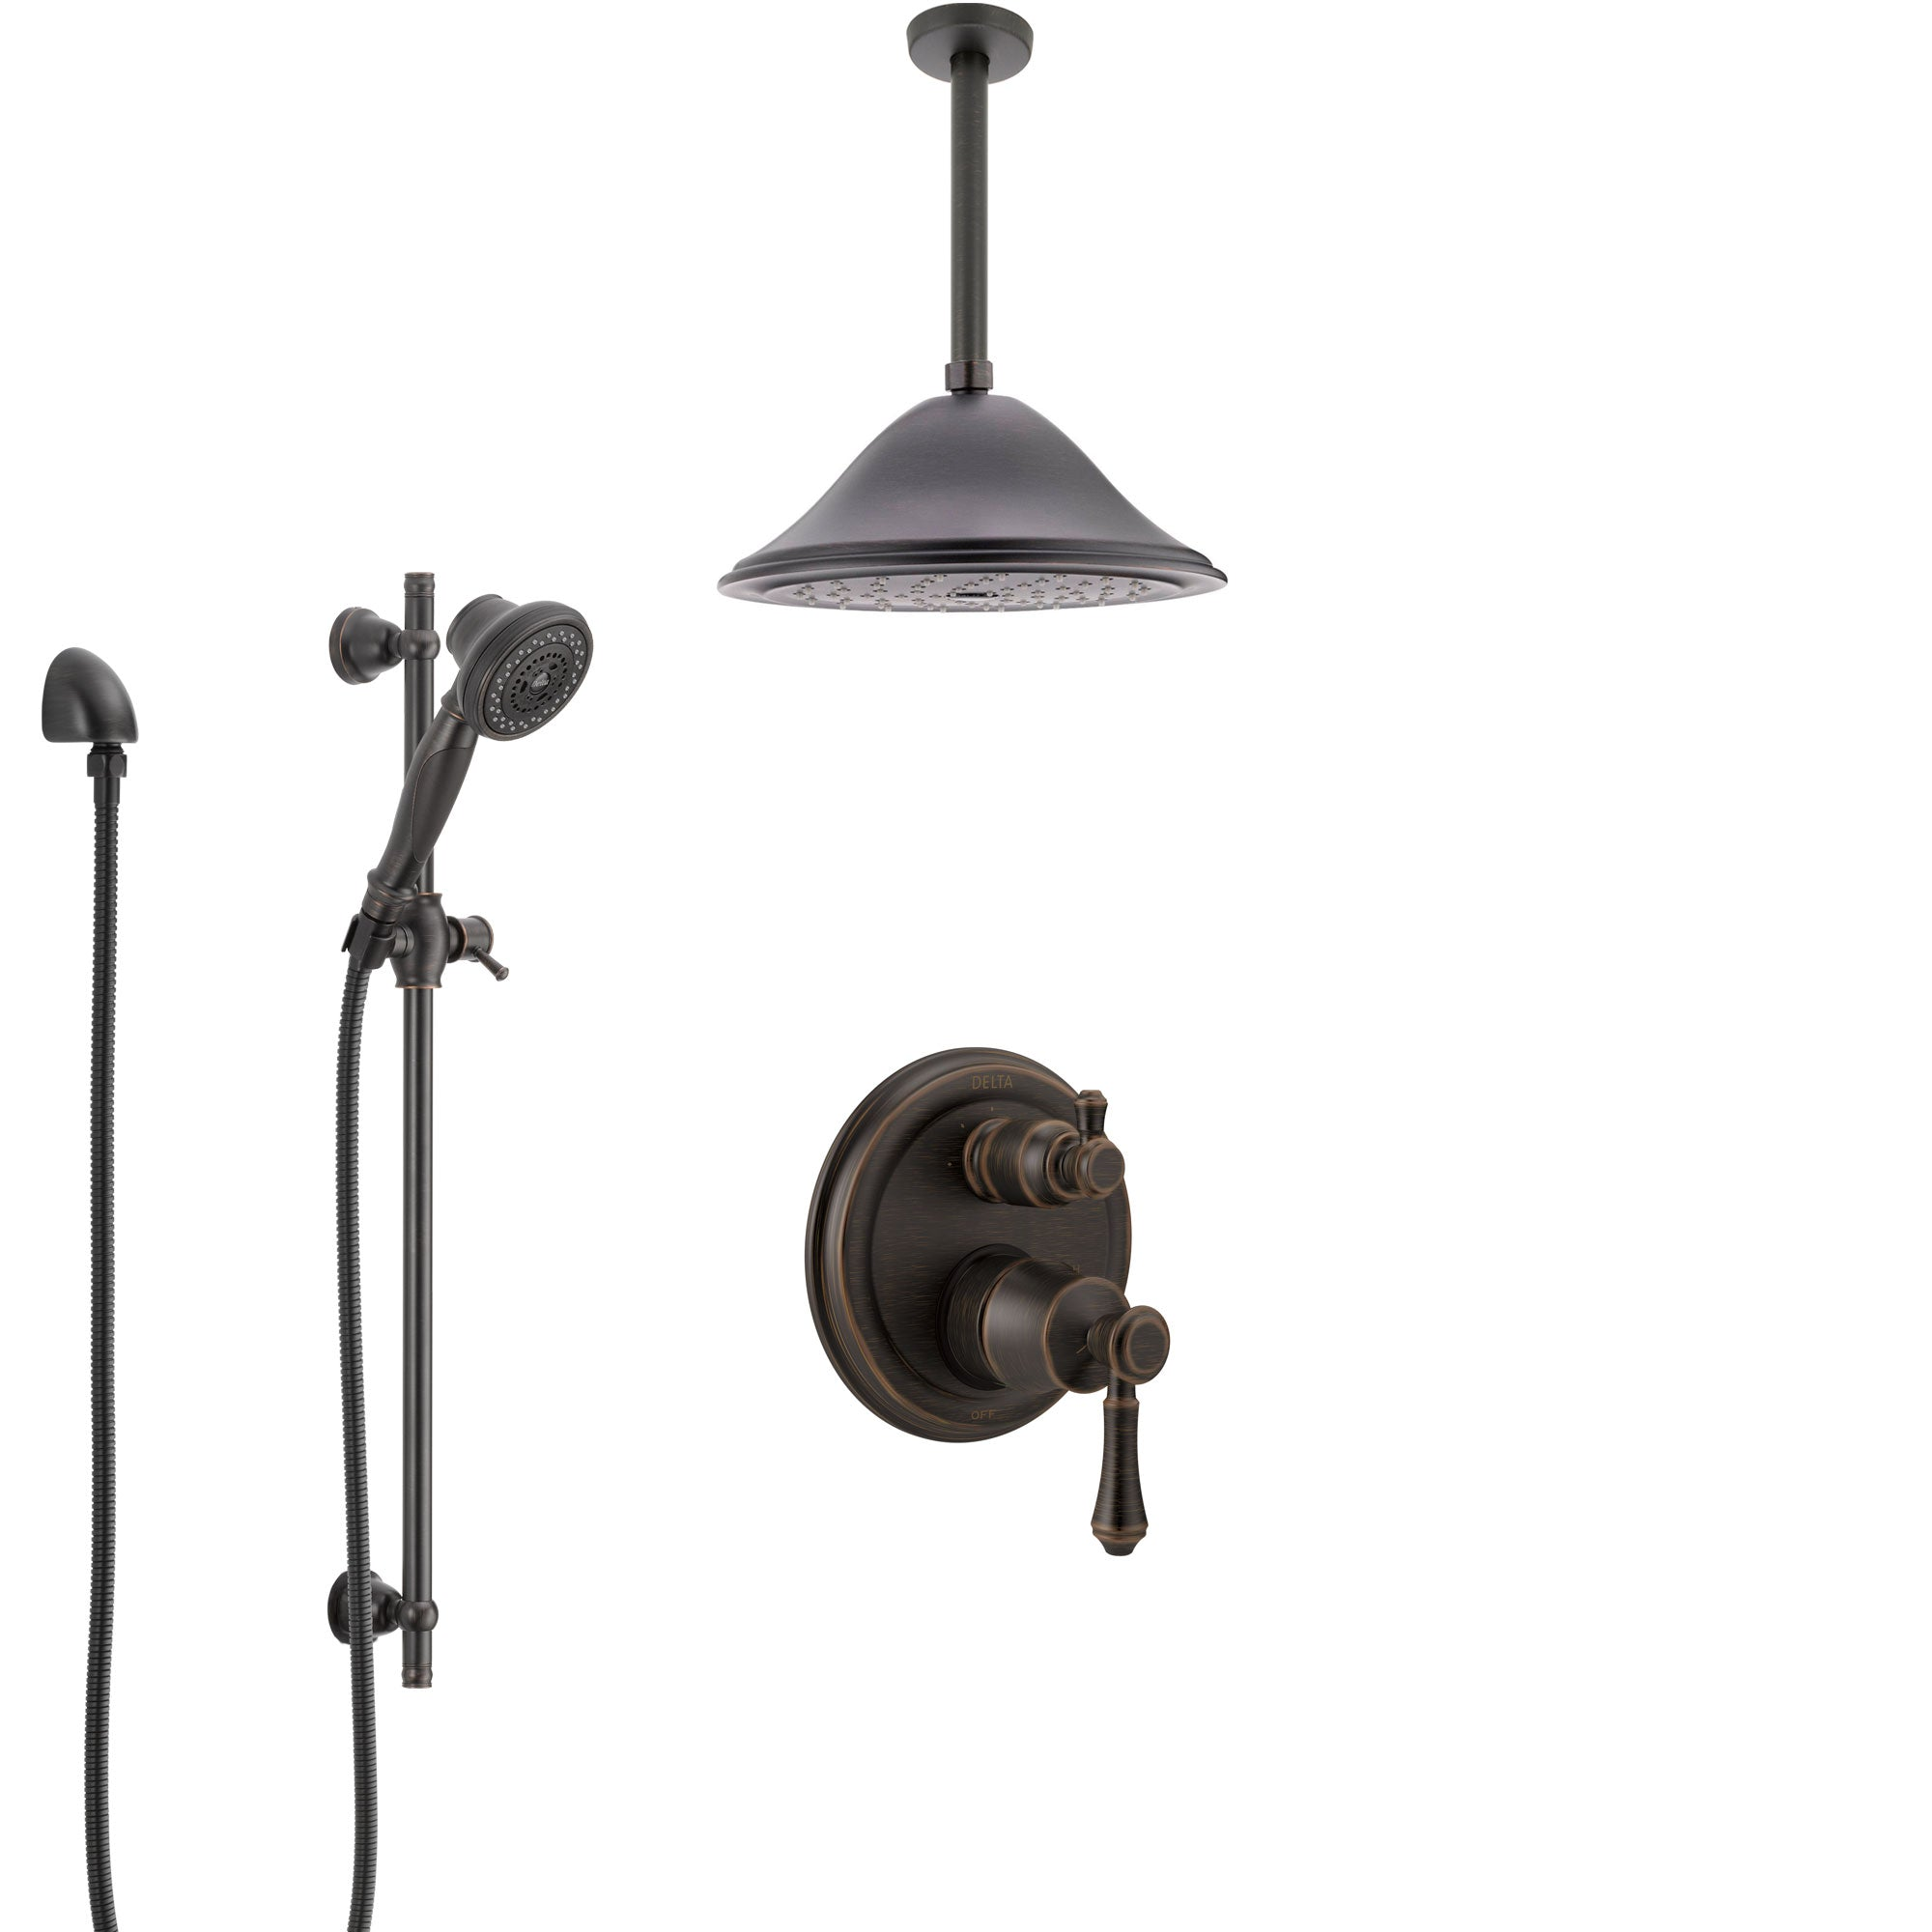 Delta Cassidy Venetian Bronze Shower System with Control Handle, Integrated Diverter, Ceiling Mount Showerhead, and Hand Shower SS24897RB7